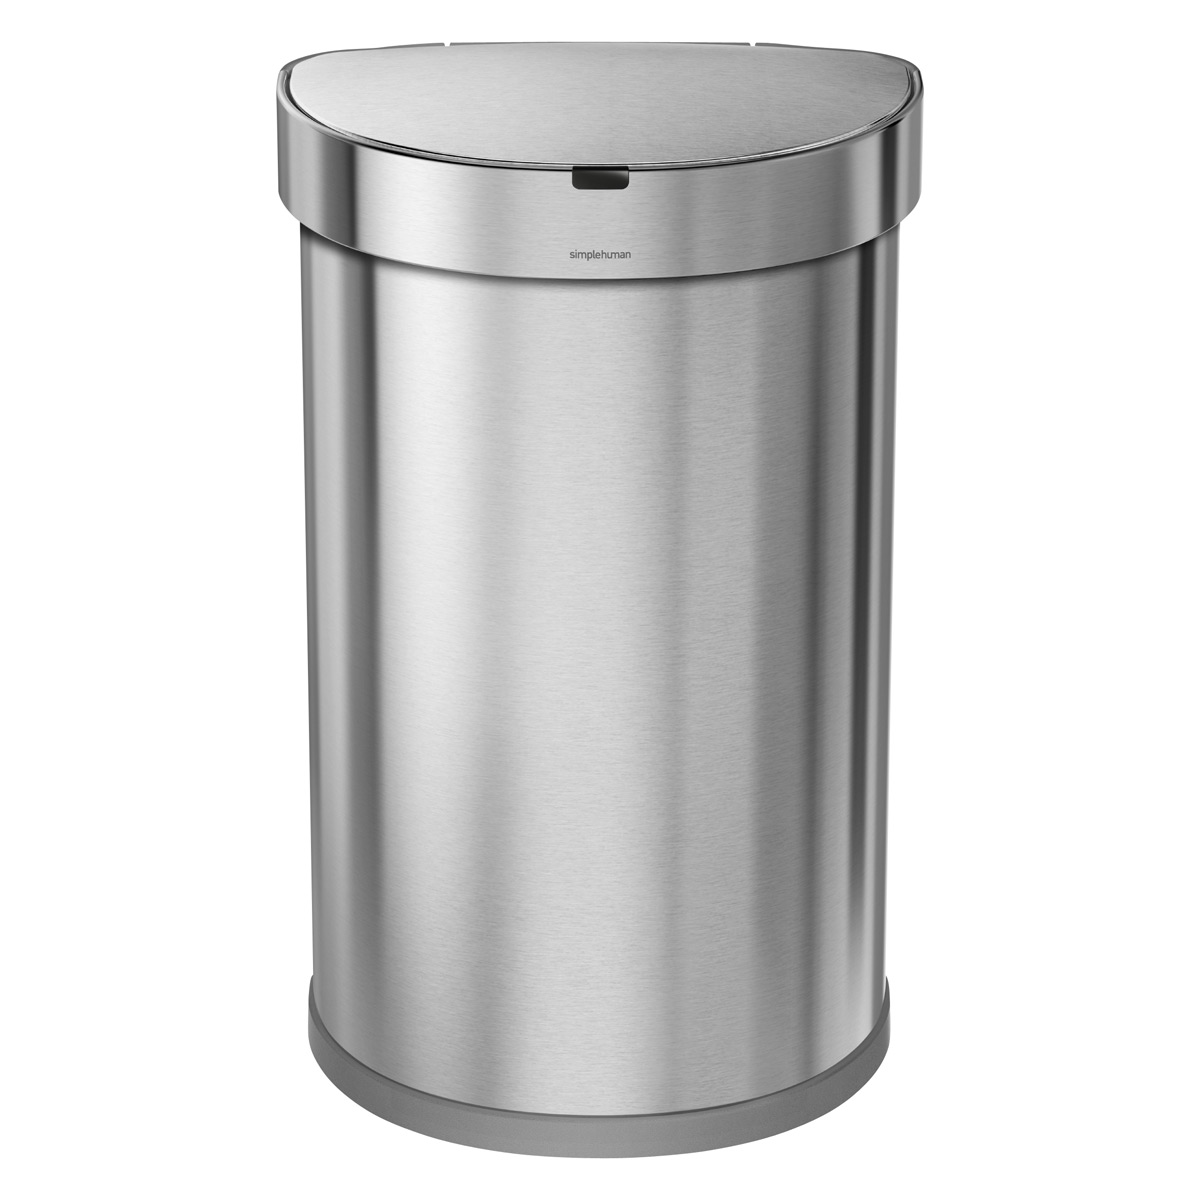 simplehuman stainless steel 12 gal semi round sensor trash can rh containerstore com simplehuman stainless steel kitchen trash can